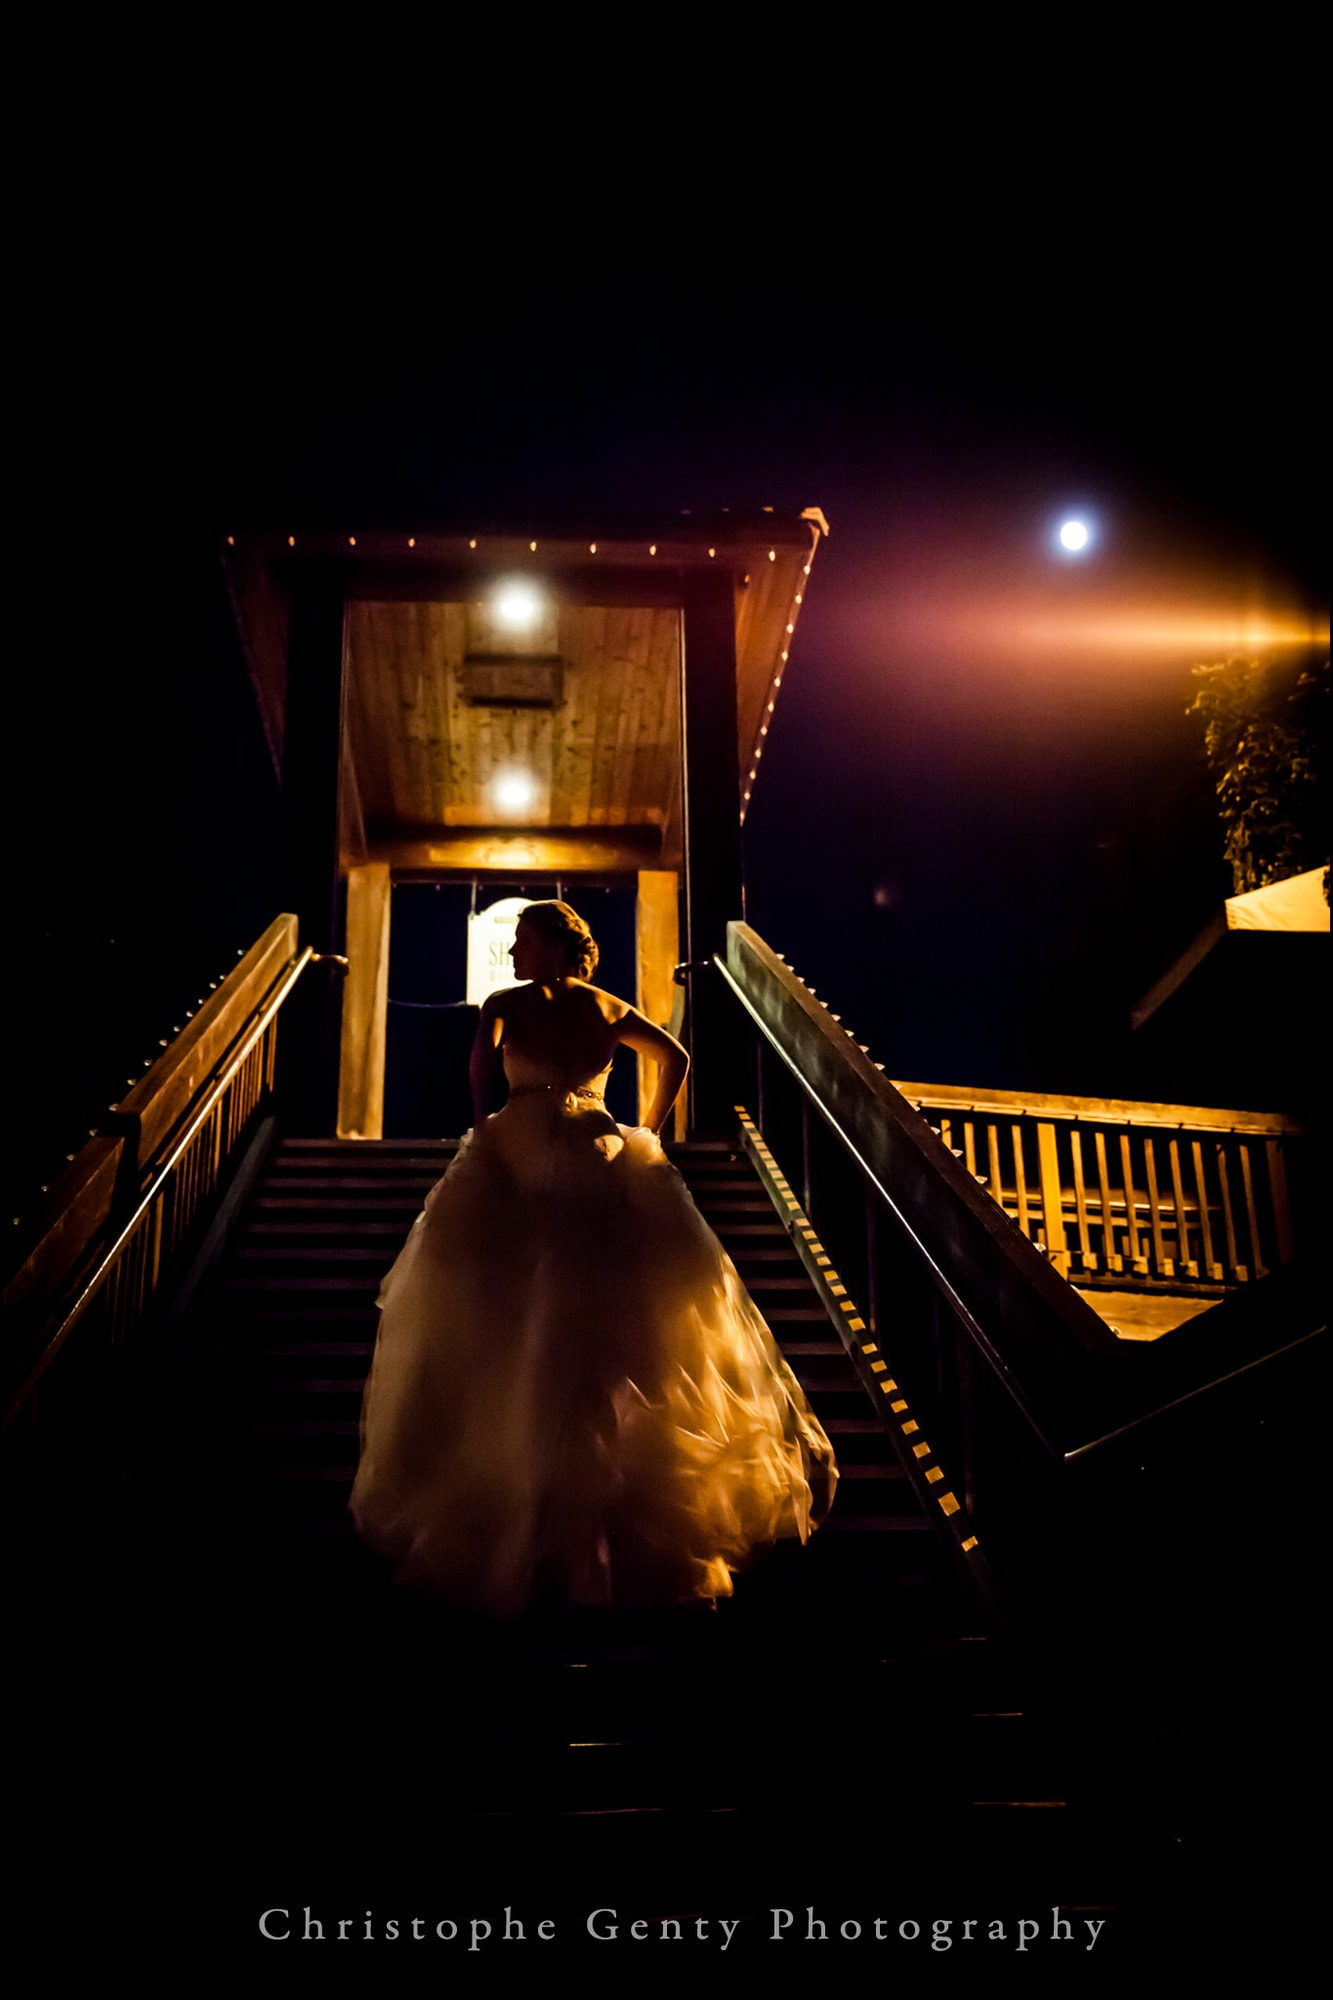 Napa Valley wedding photography at The Villagio Inn in Yountville, CA